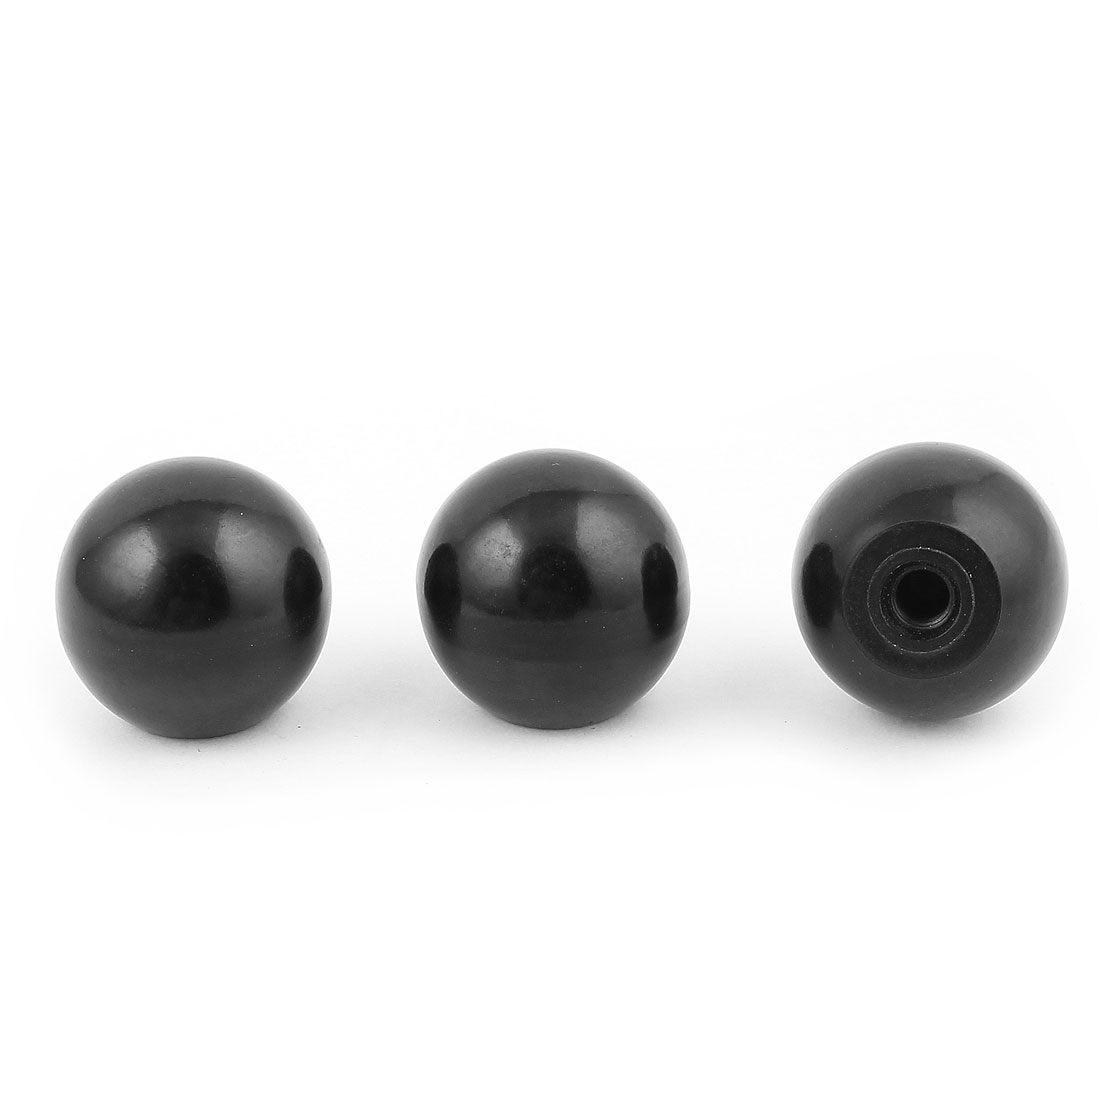 3 Pcs Plastic Ball Shape Joystick Machine Control Grip Black Knob 40mm Dia 8 mm Bore